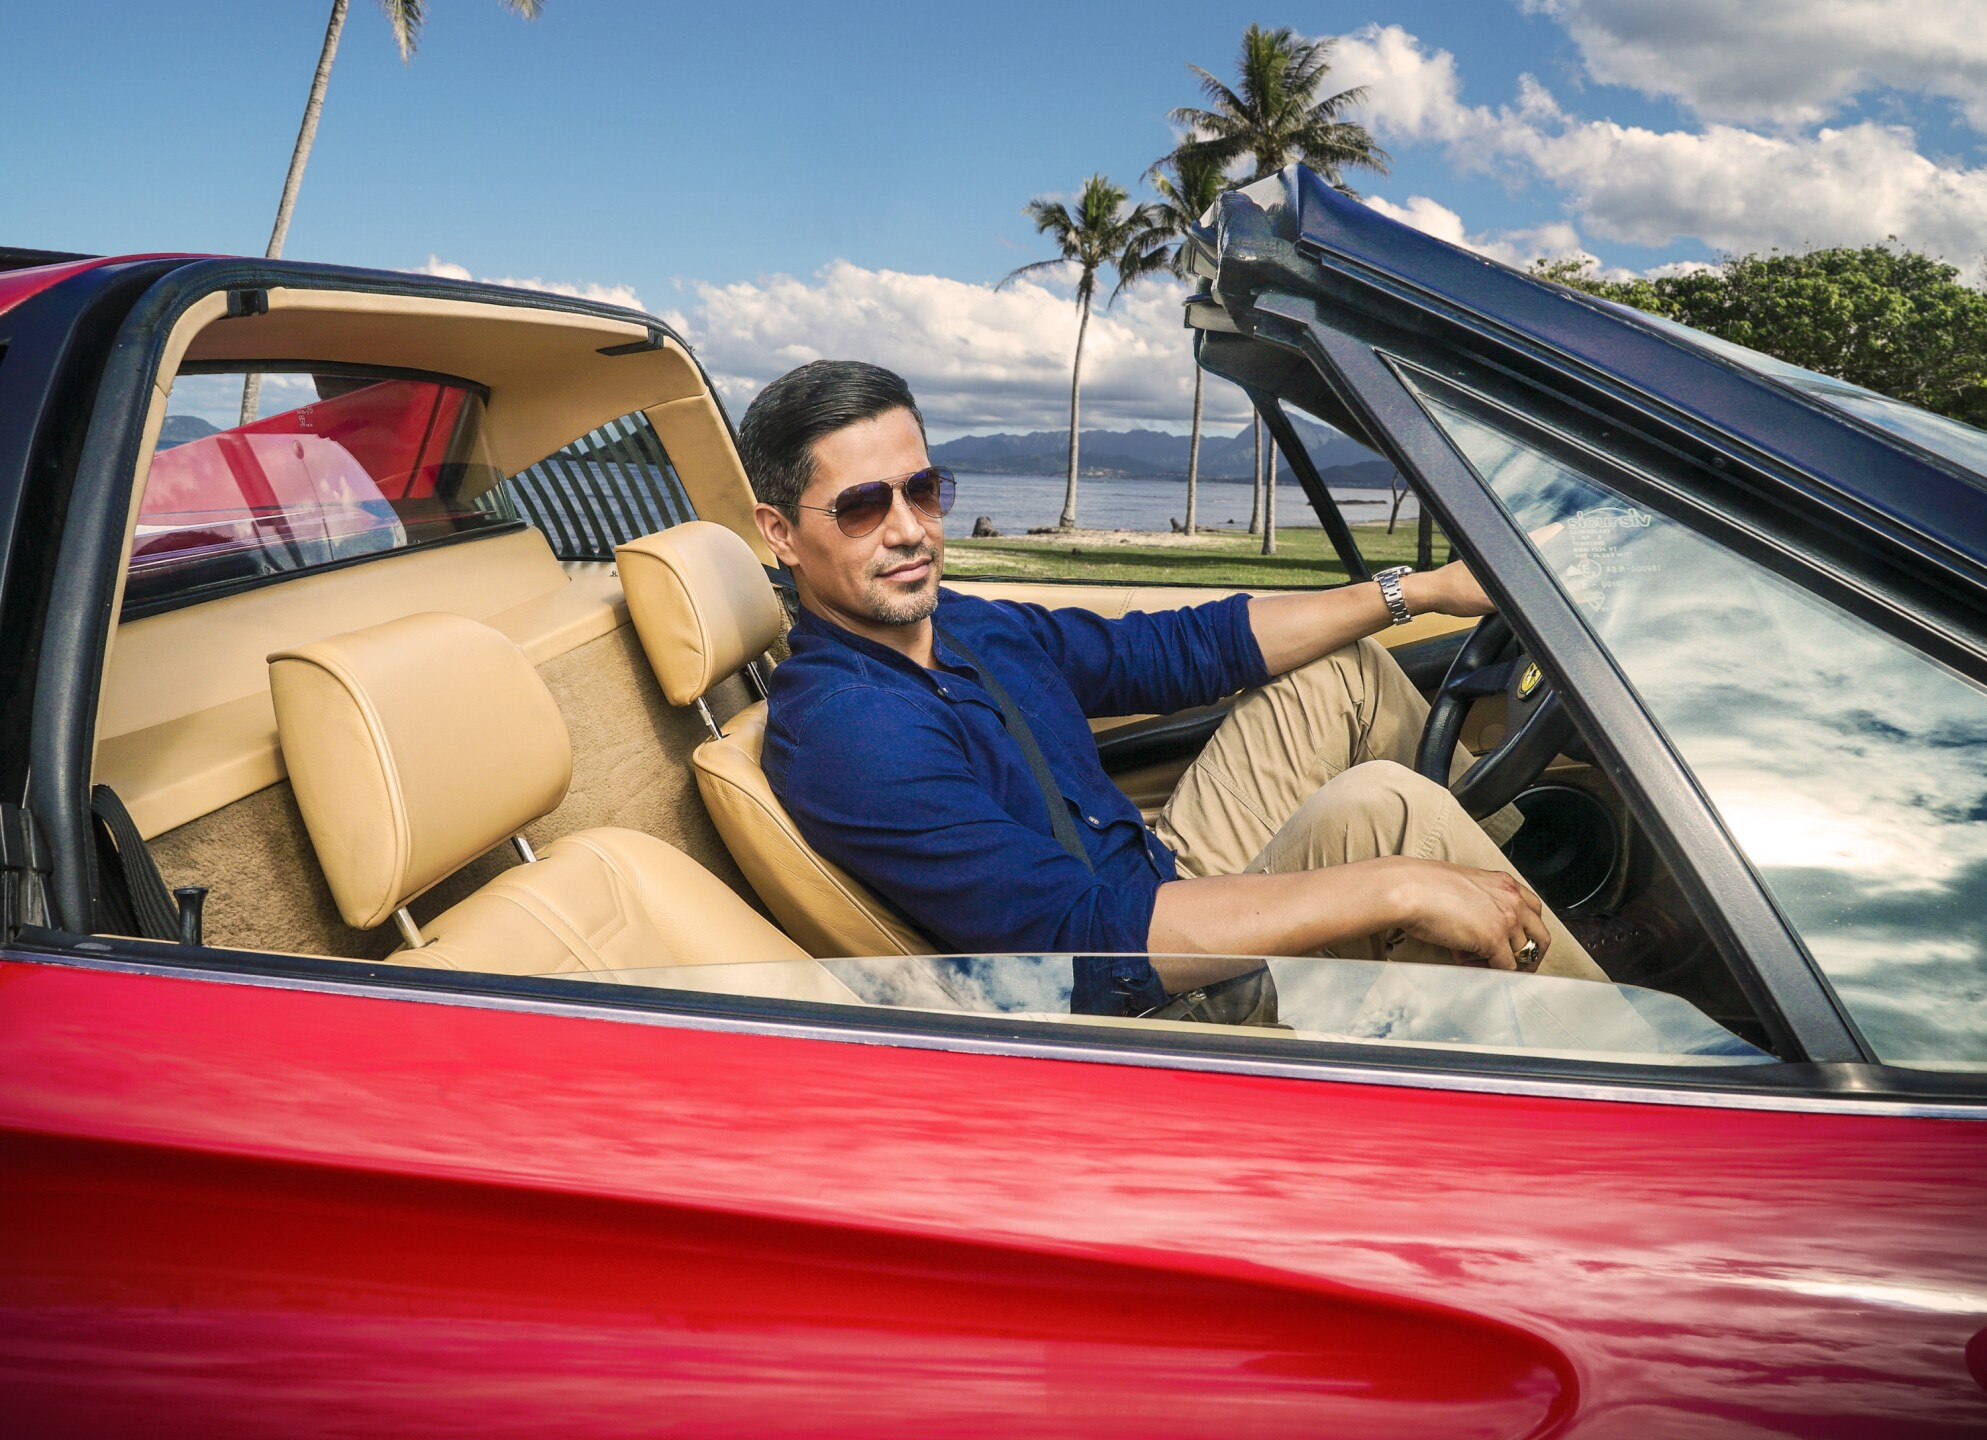 Photos: Sneak peek of the Magnum P.I. reboot